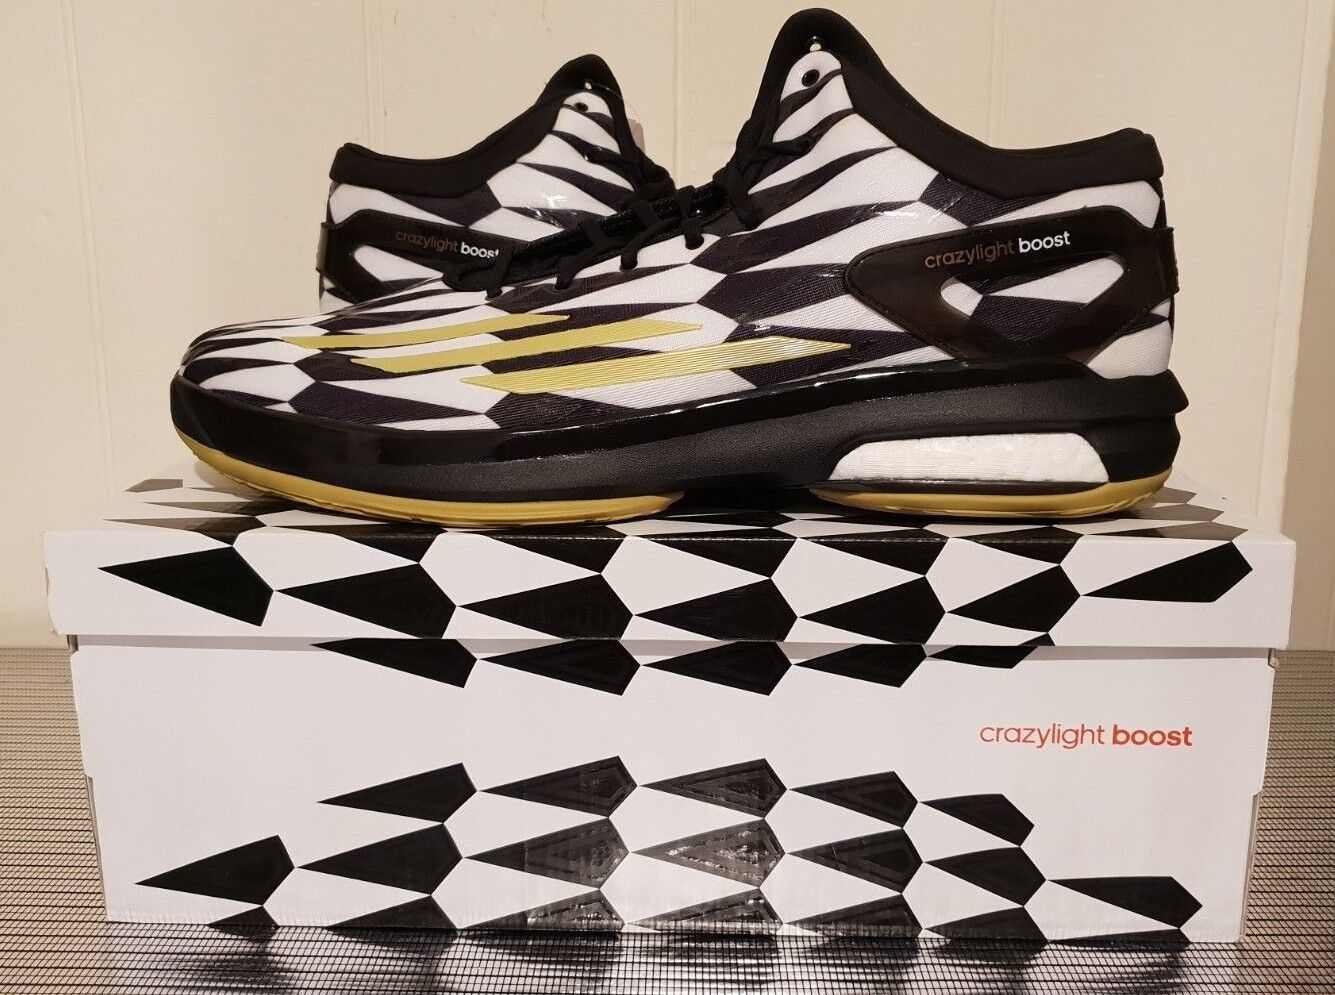 Adidas Crazy Light Boost Black And White Basketball Mens UK Size 18 NEW IN BOX